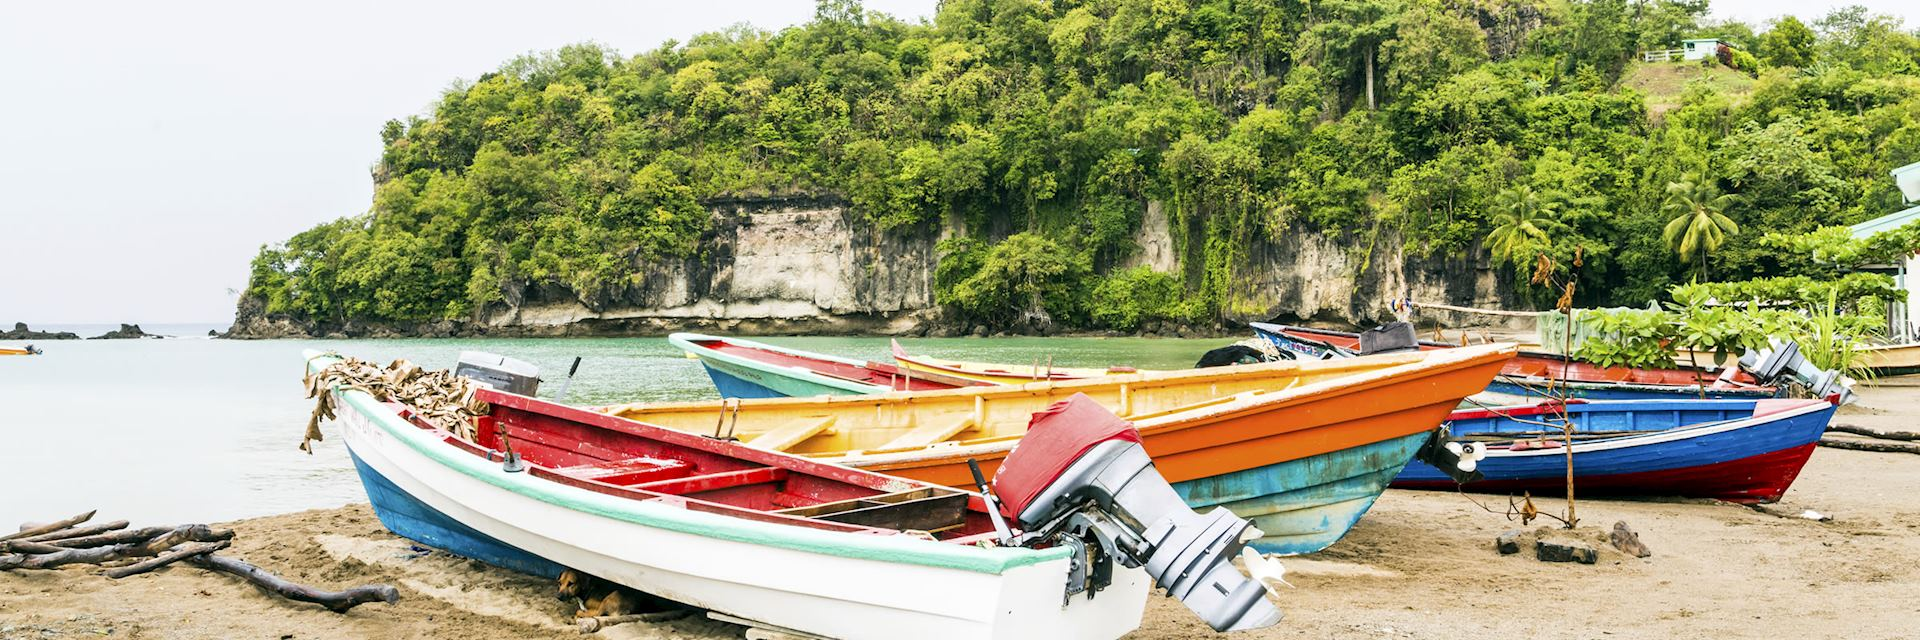 Fishing boats on St Lucia